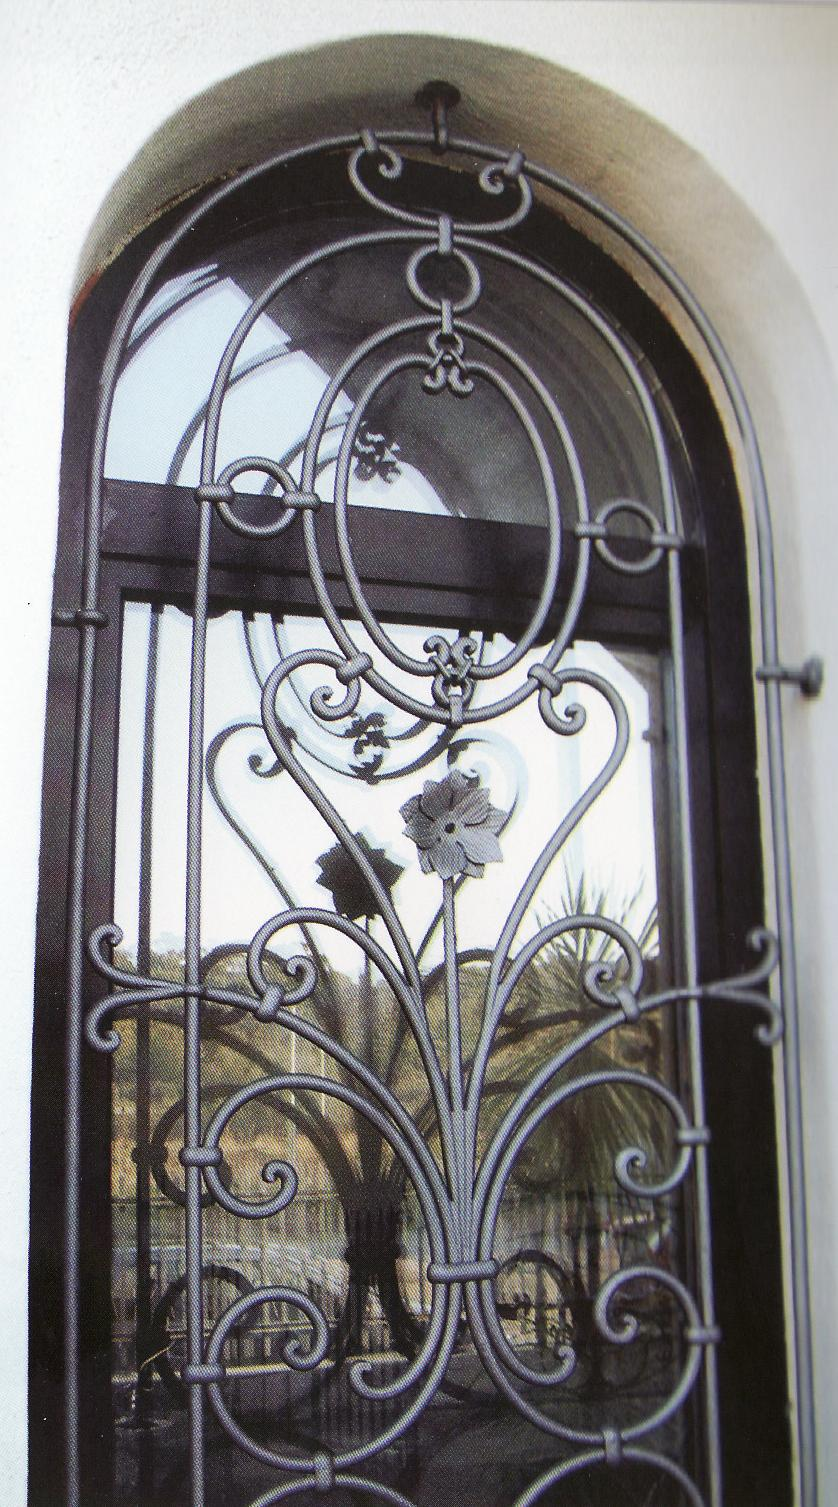 Installation security grilles: grilles and railings